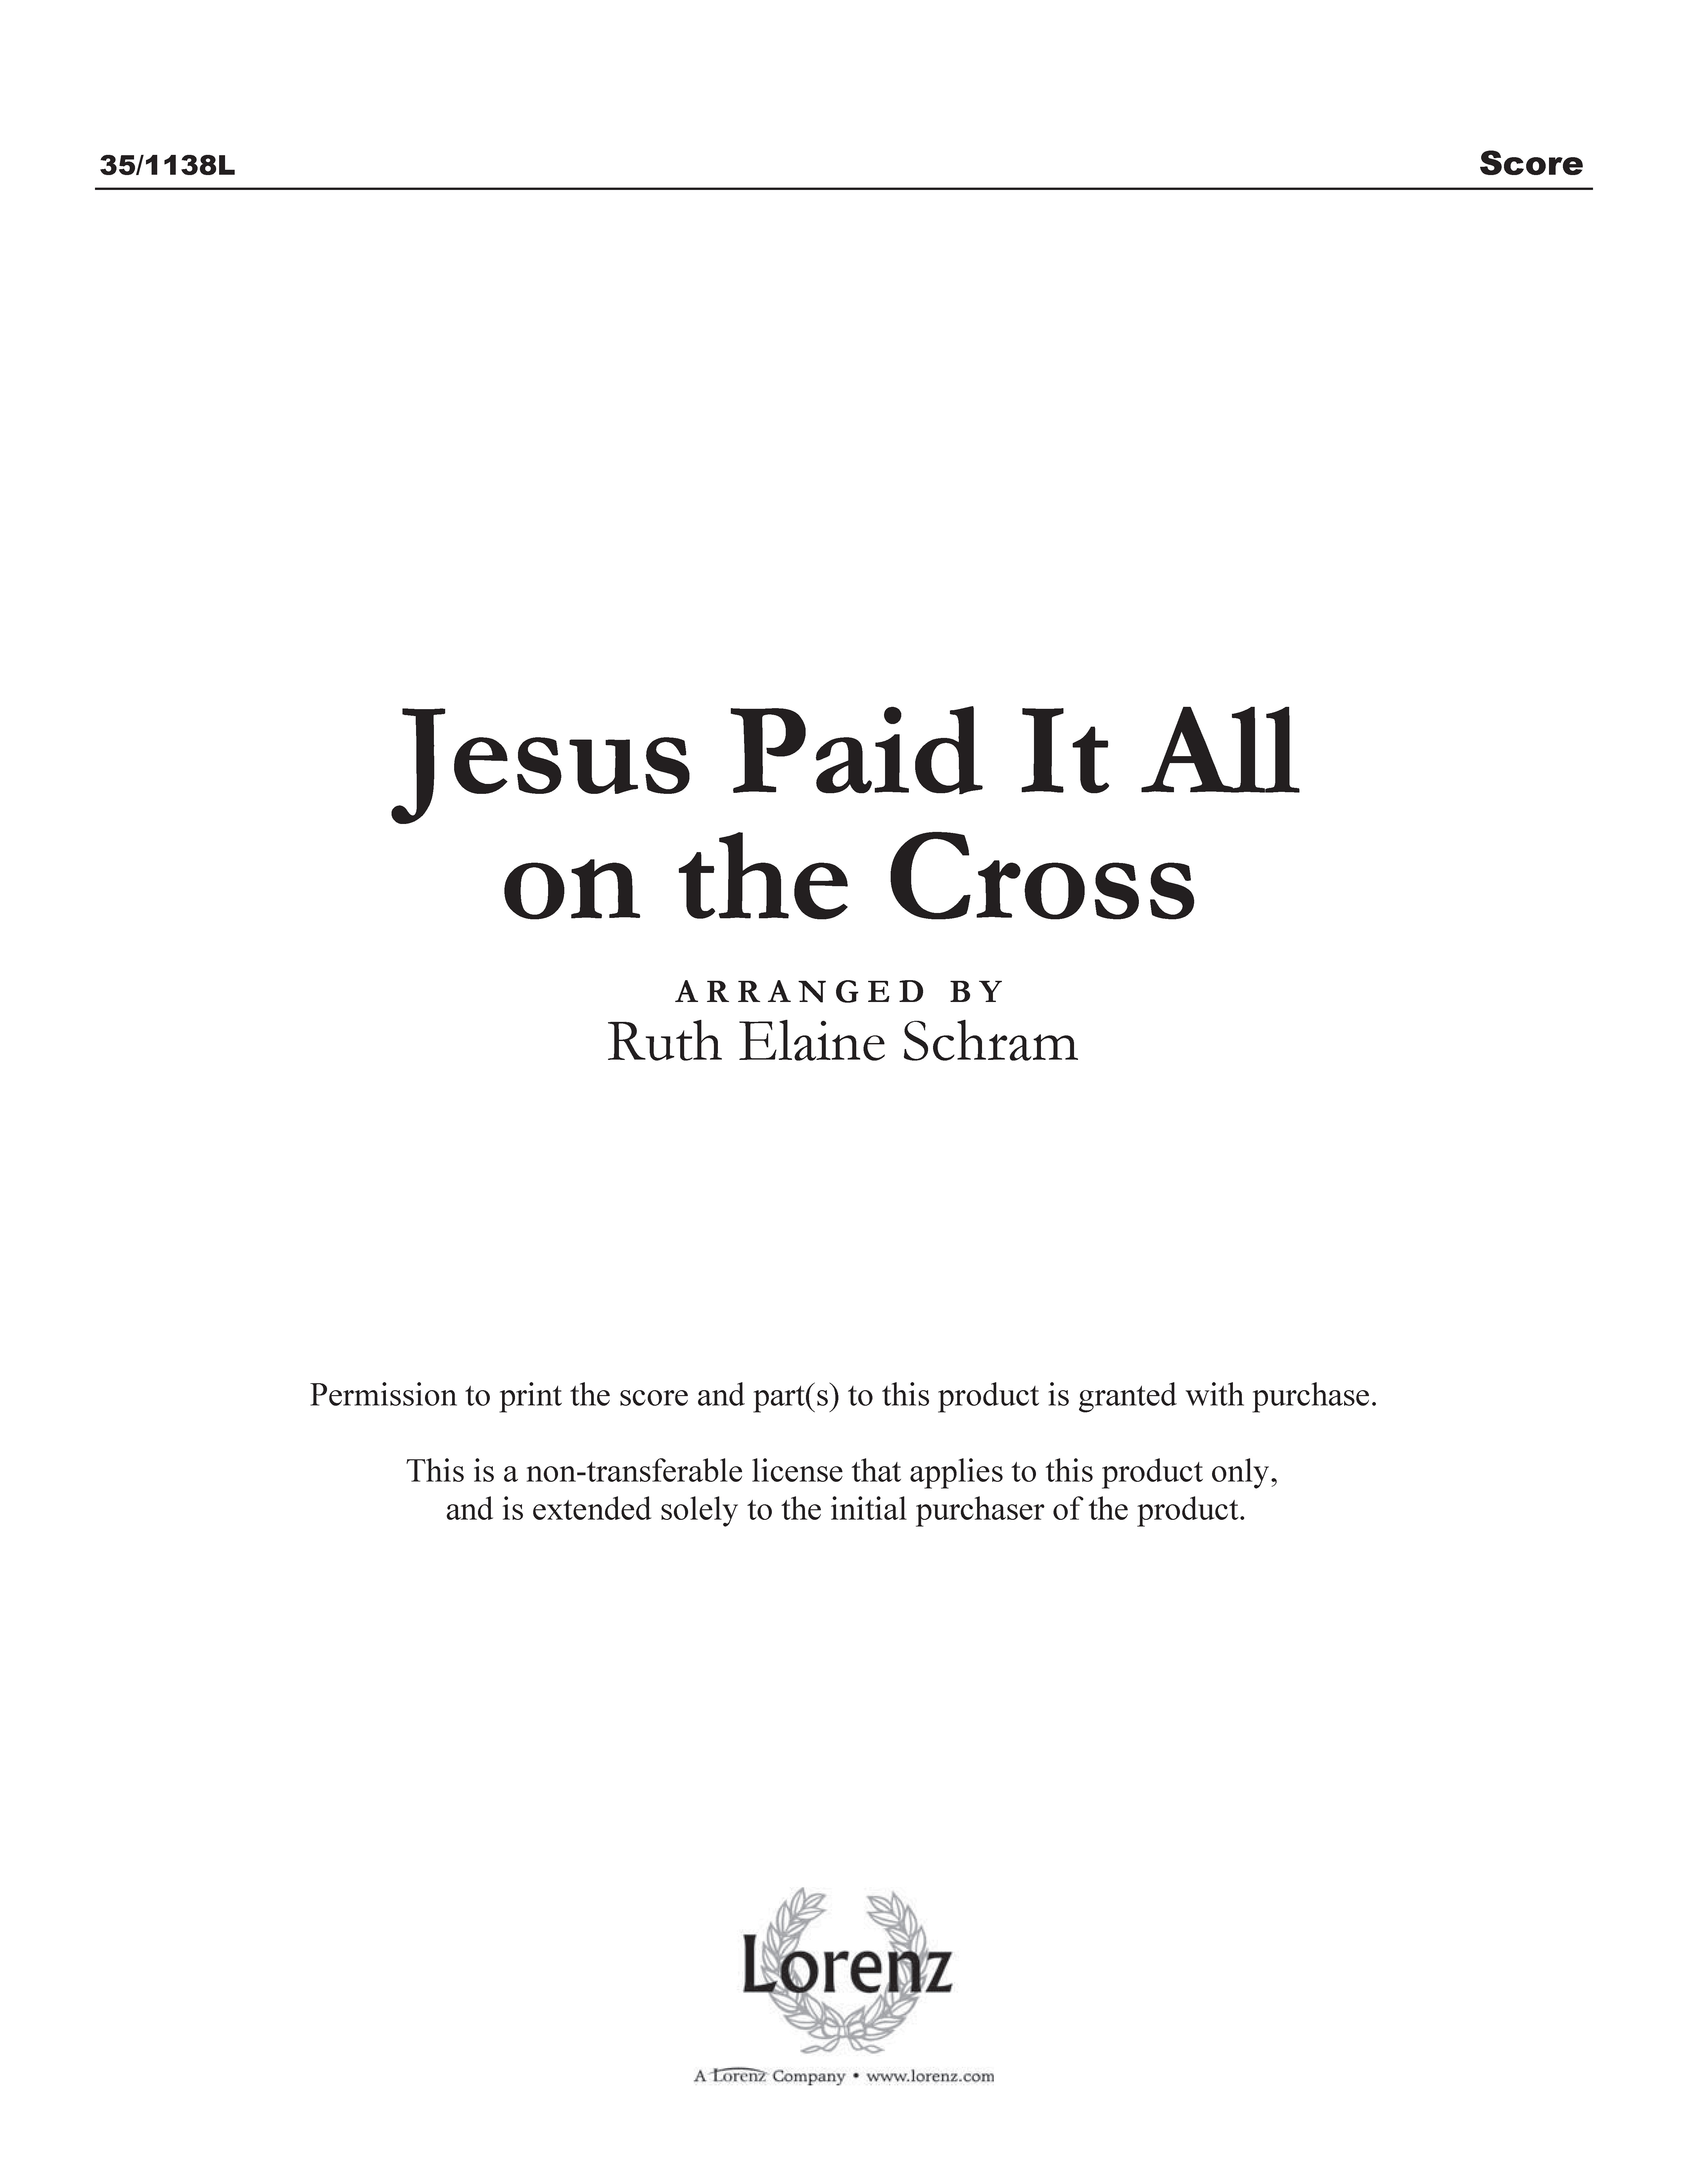 Jesus Paid It All on the Cross (Digital Delivery)